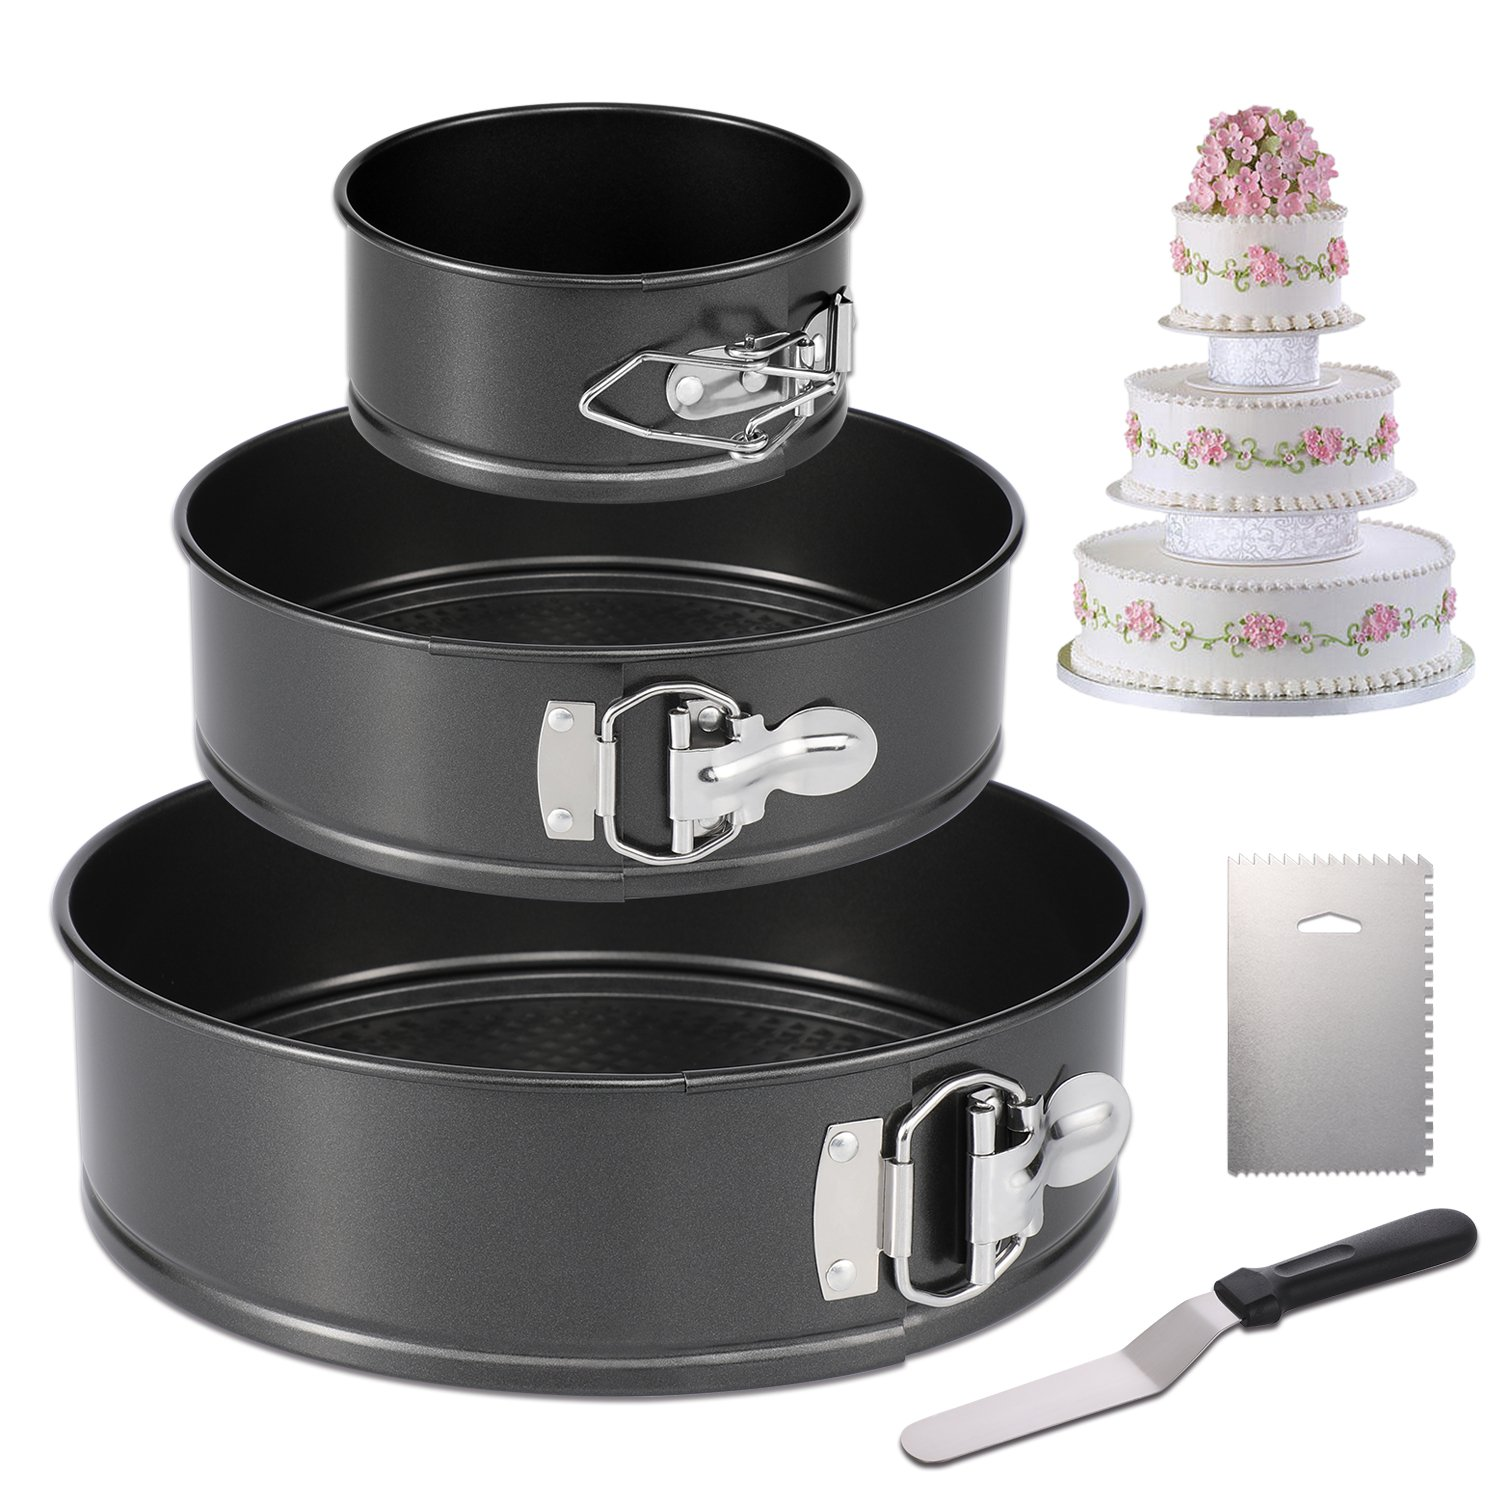 Hiware Springform Pan Set of 3 Non-stick Cheesecake Pan, Leakproof Round Cake Pan Set Includes 3 Piece 4'' 7'' 9'' Springform Pan, Icing Spatula and Icing Smoother by Hiware